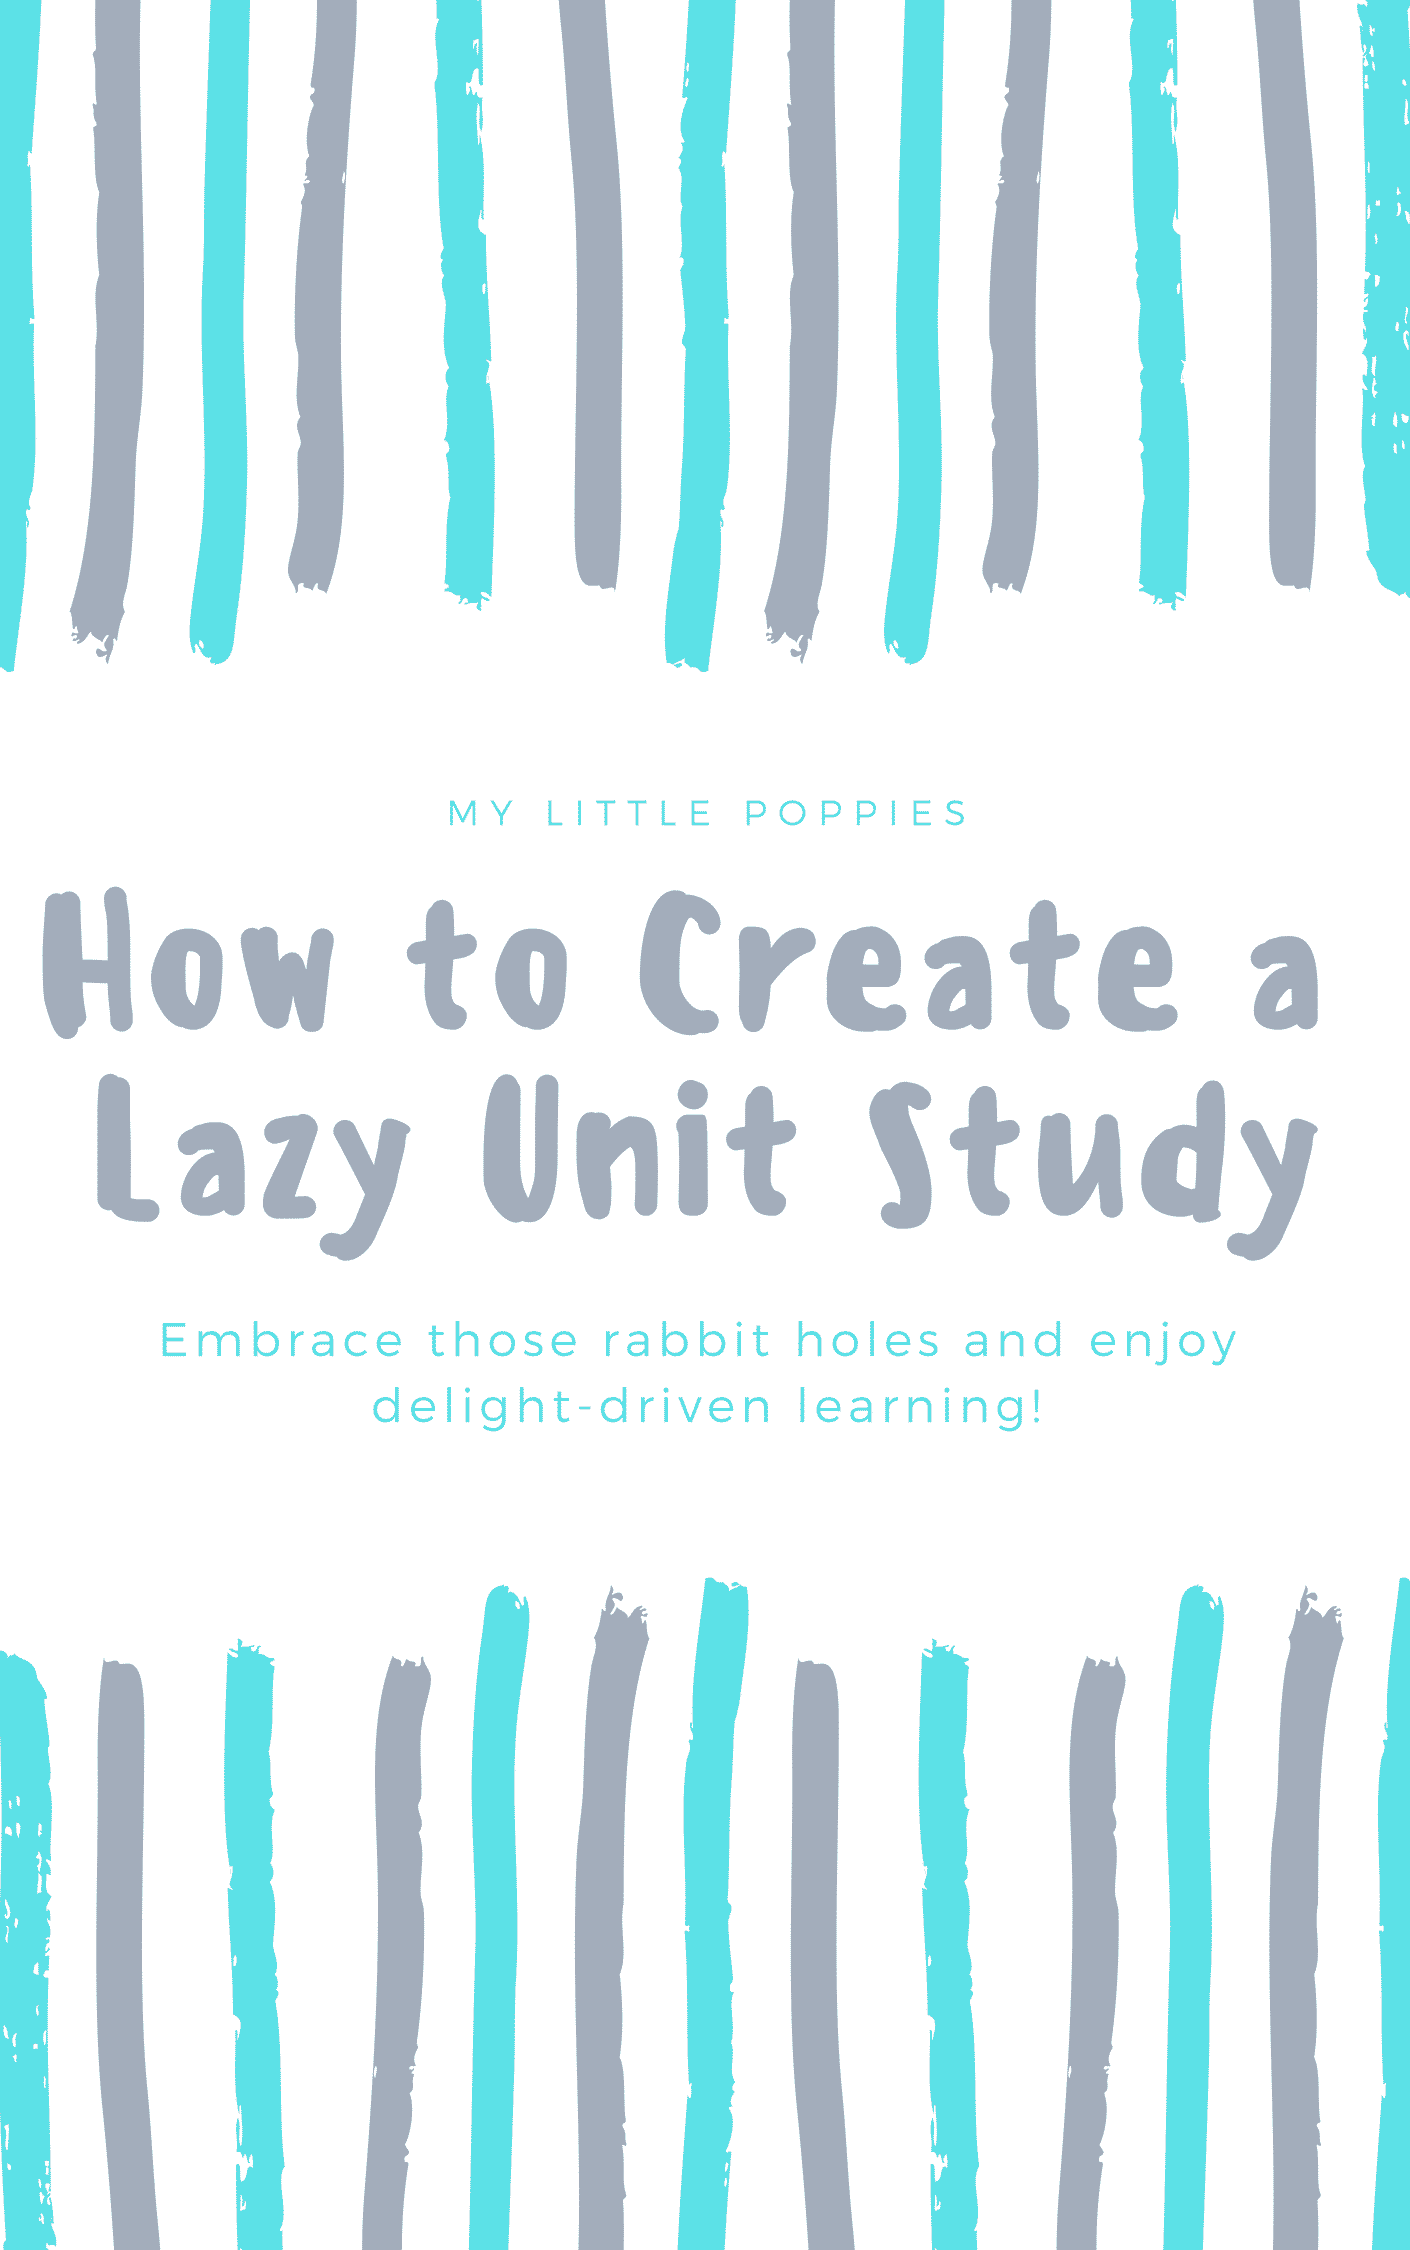 How to Create a Lazy Unit Study